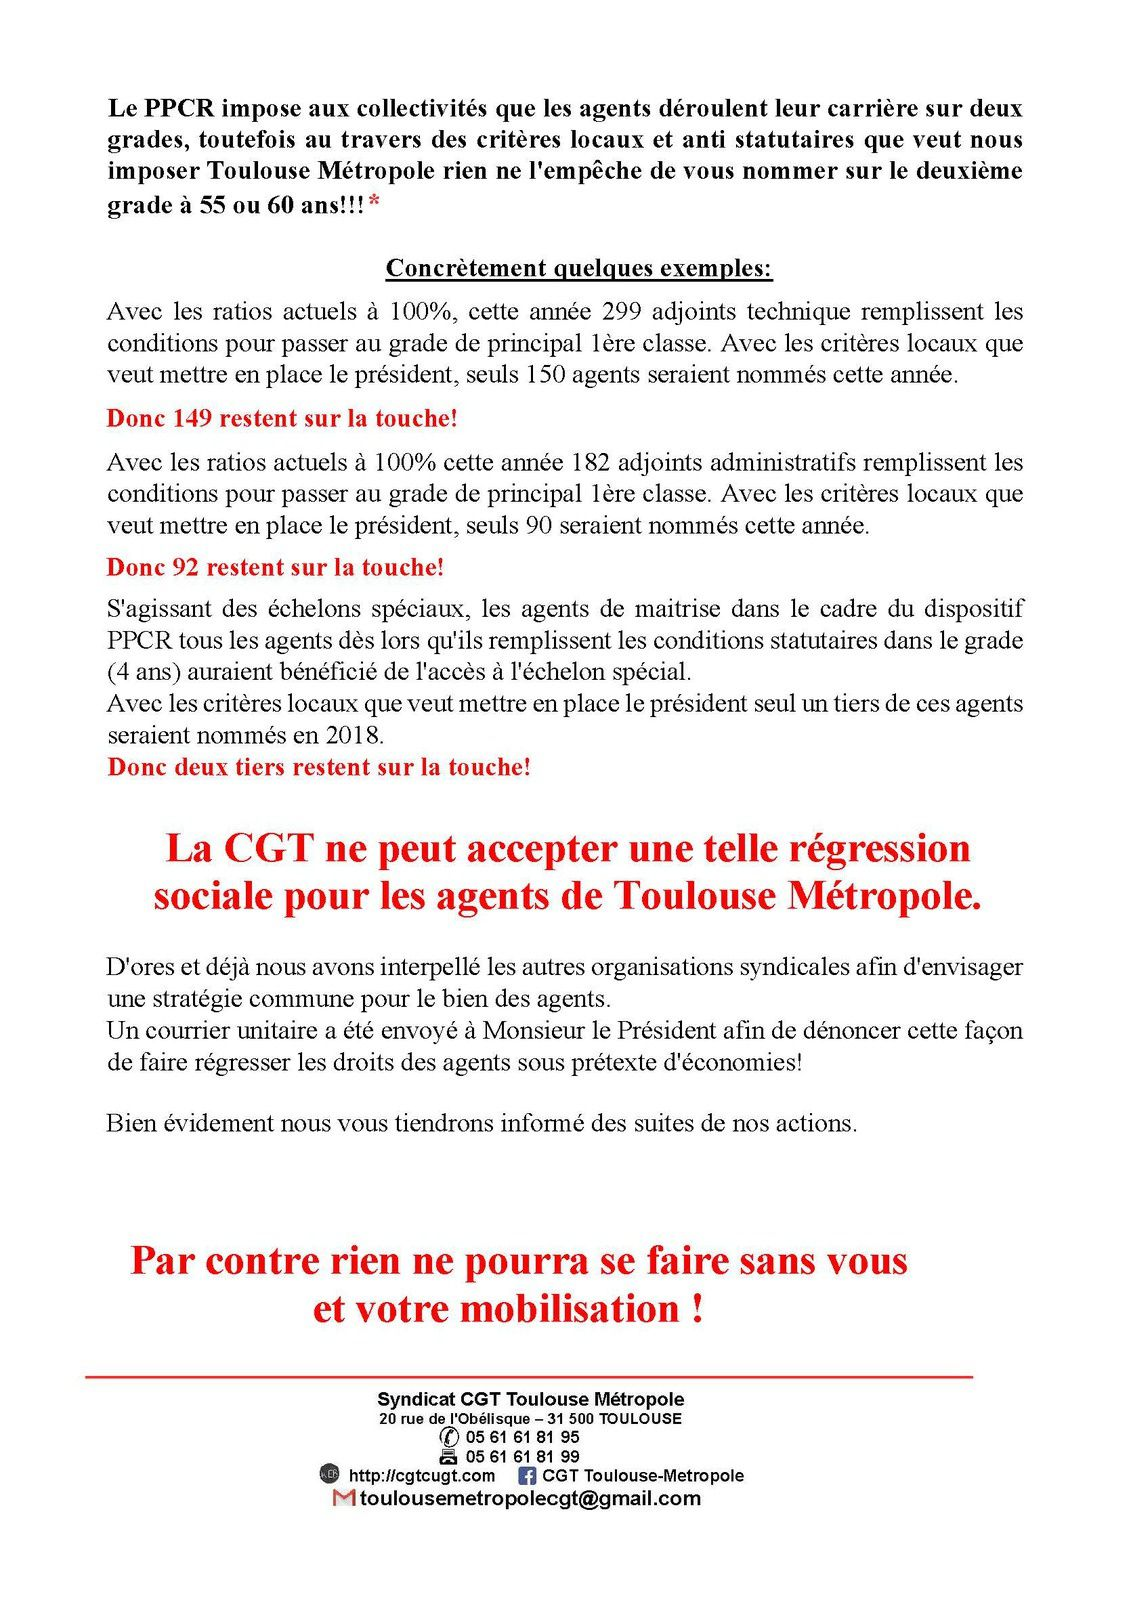 Courrier intersyndicale + Tract CGT TM